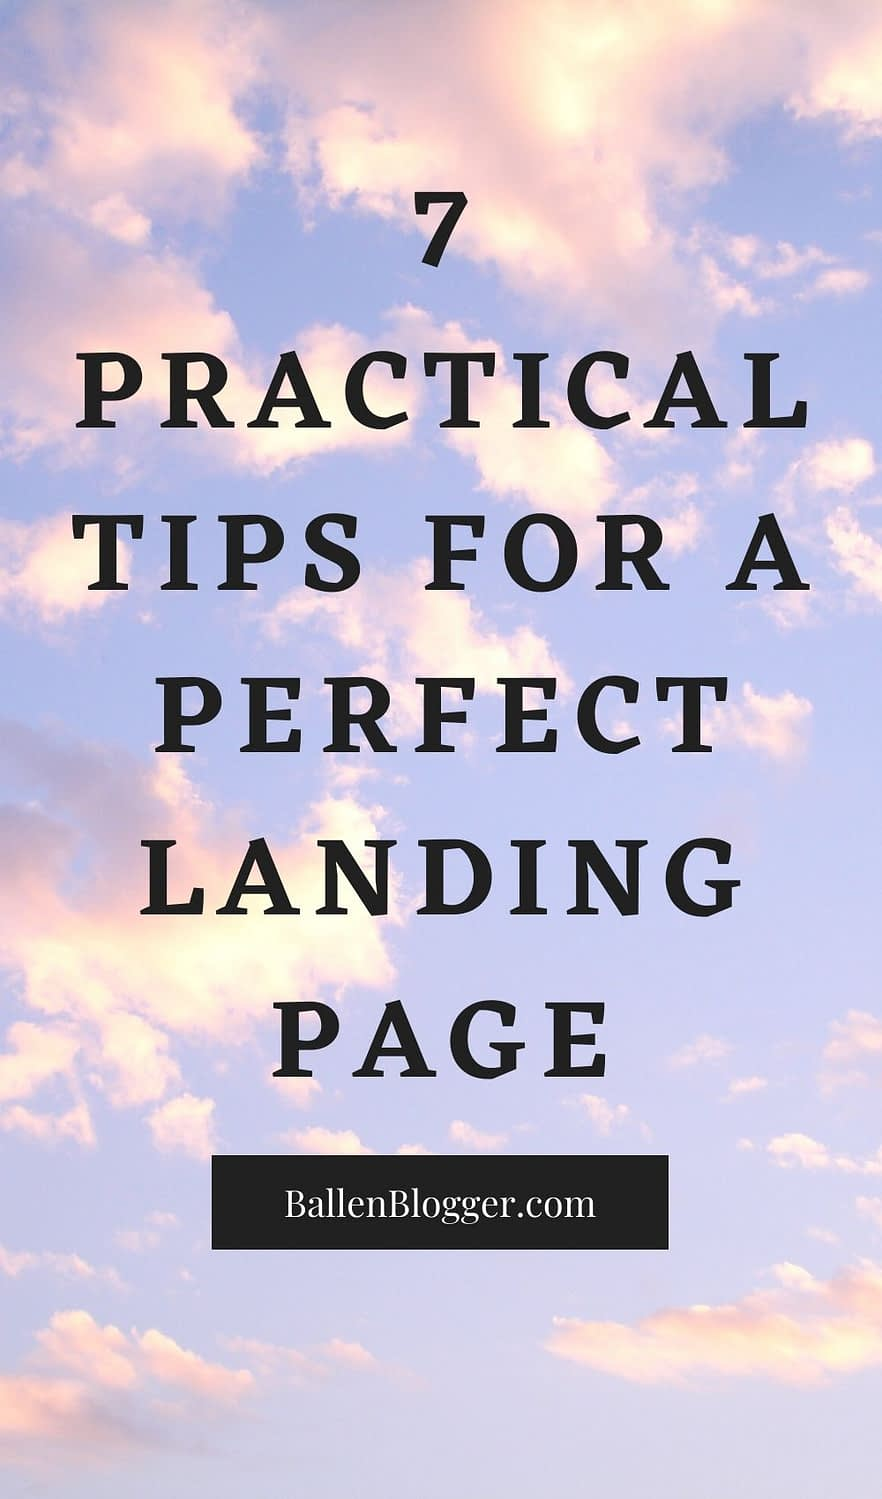 Landing pages are like book covers; they need to entice people to read. Otherwise, your online traffic will simply head somewhere else to purchase.